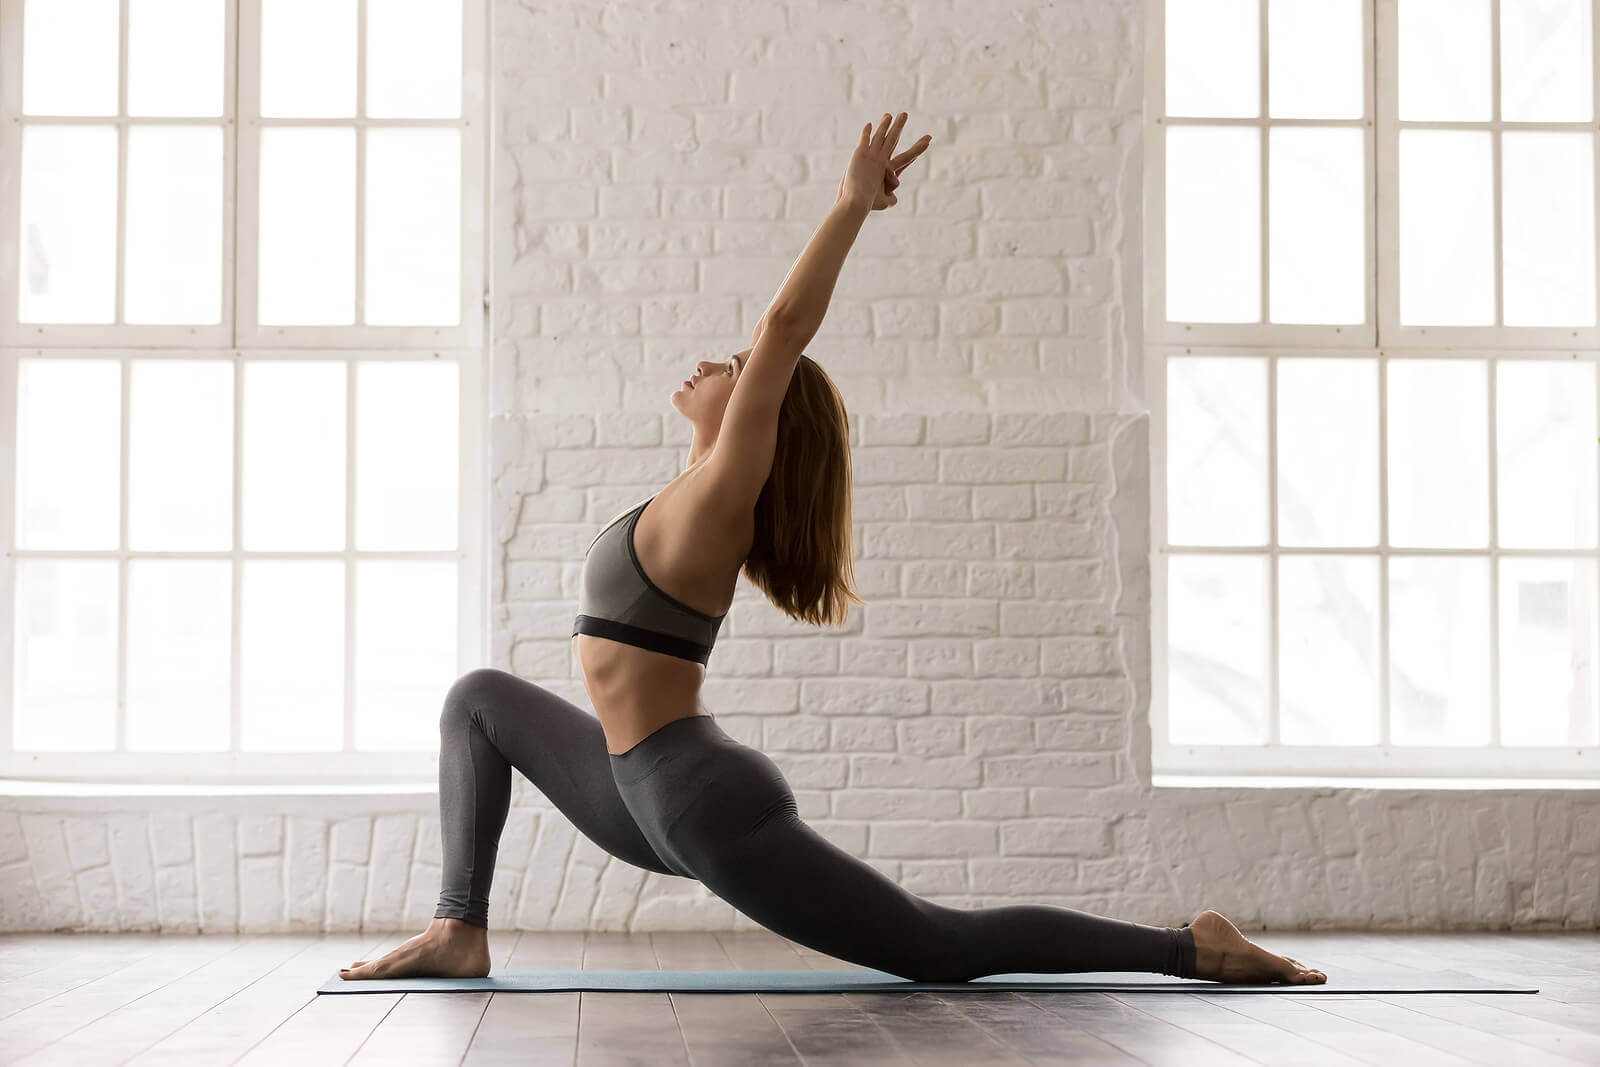 A woman doing a back stretch.